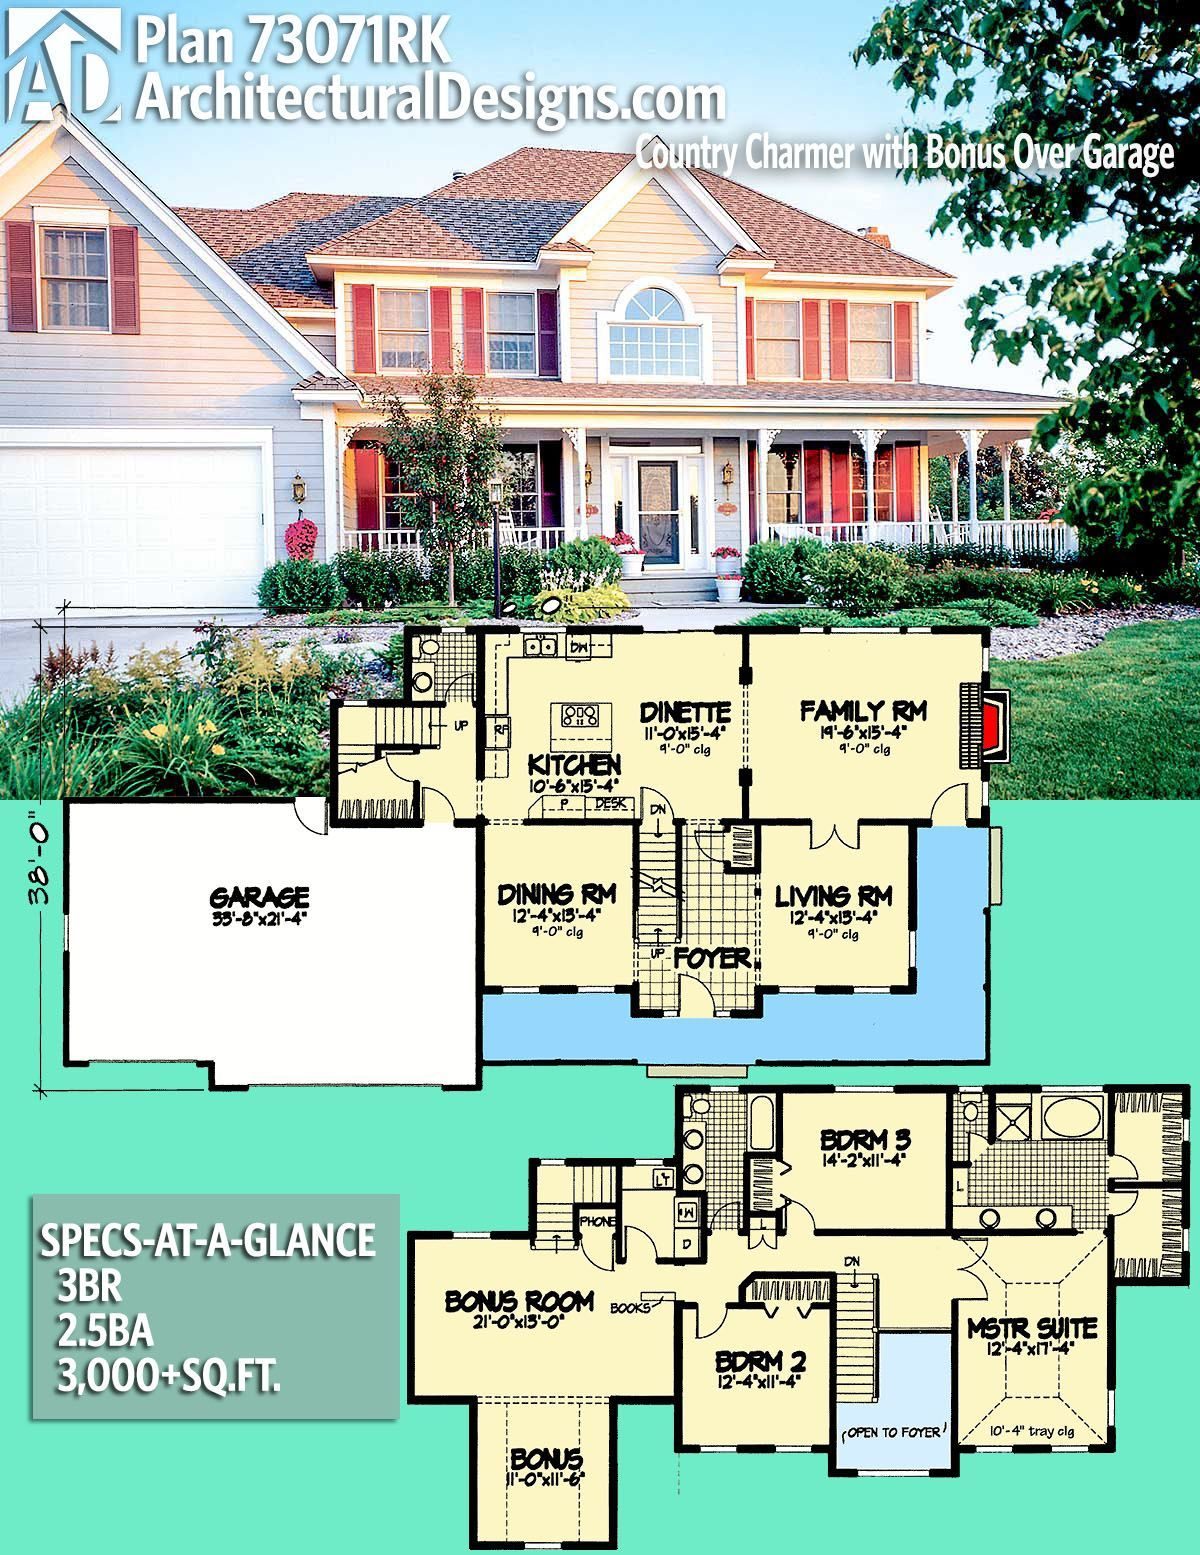 Architectural designs house plan rk love that there are two sets of stairs on different sides the to get second floor also rh pinterest